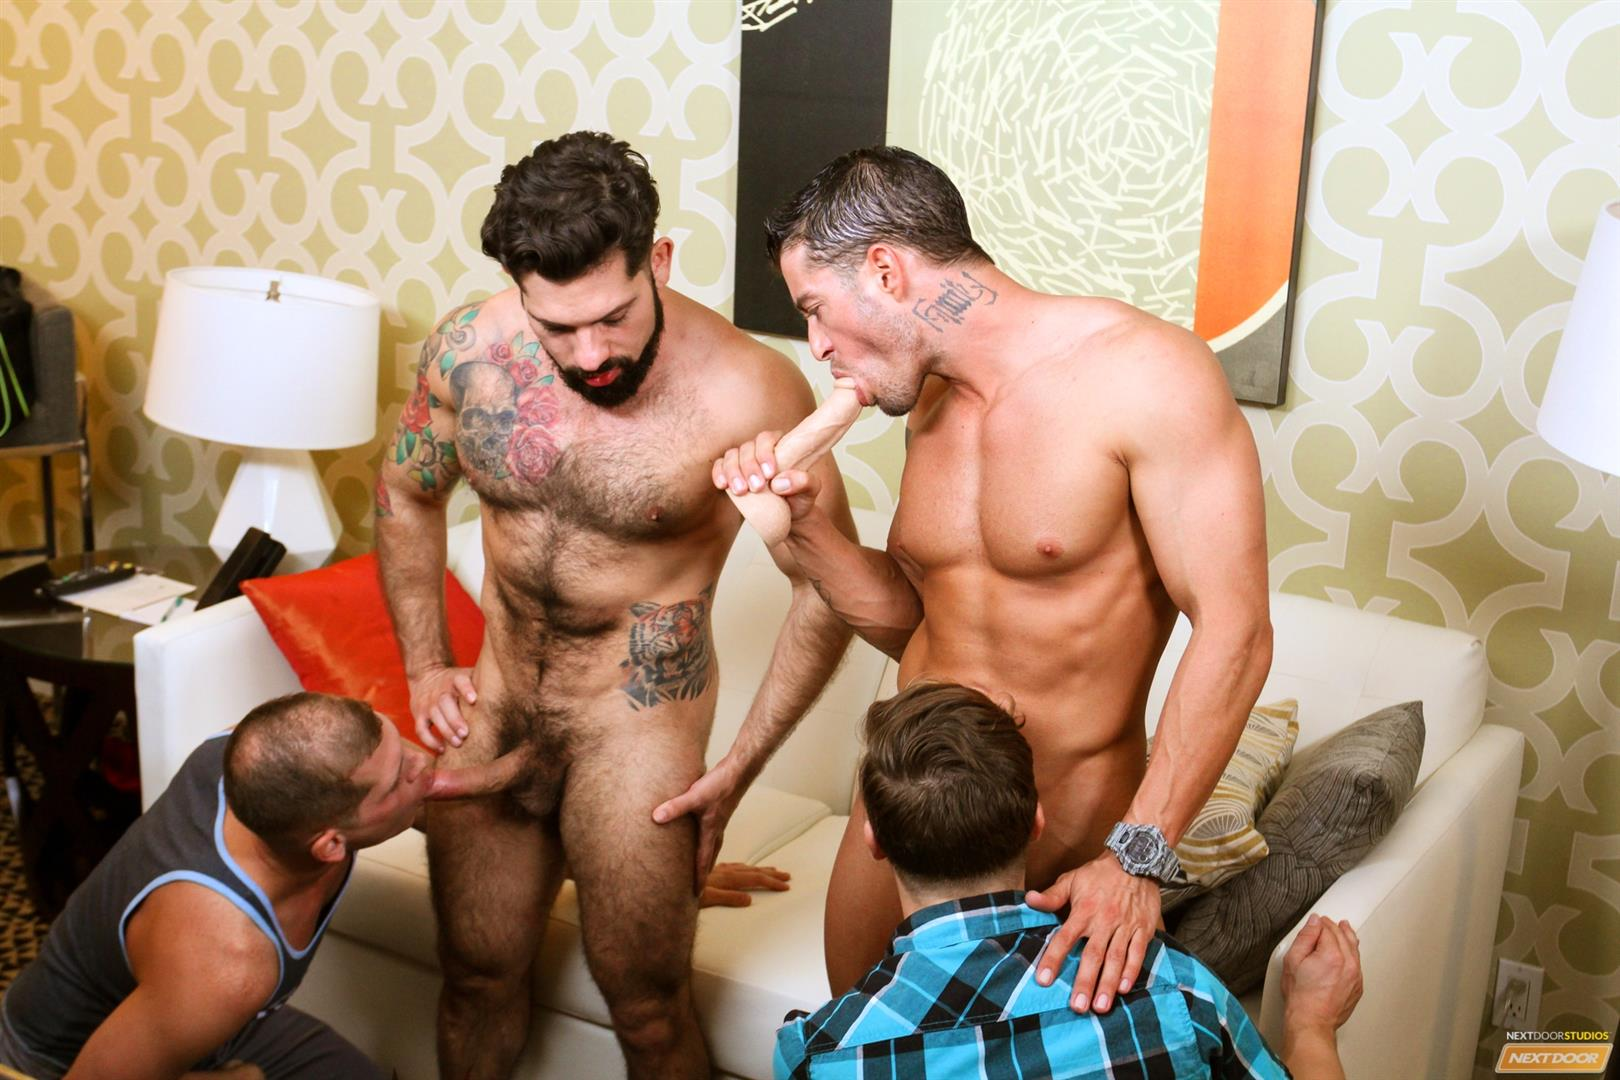 Cody Cummings and Tyler Morgan and Alessandro Del Torro Cock Sucking Lessons Amateur Gay Porn 11 Cody Cummings Gives The Boys Cock Sucking Lessons